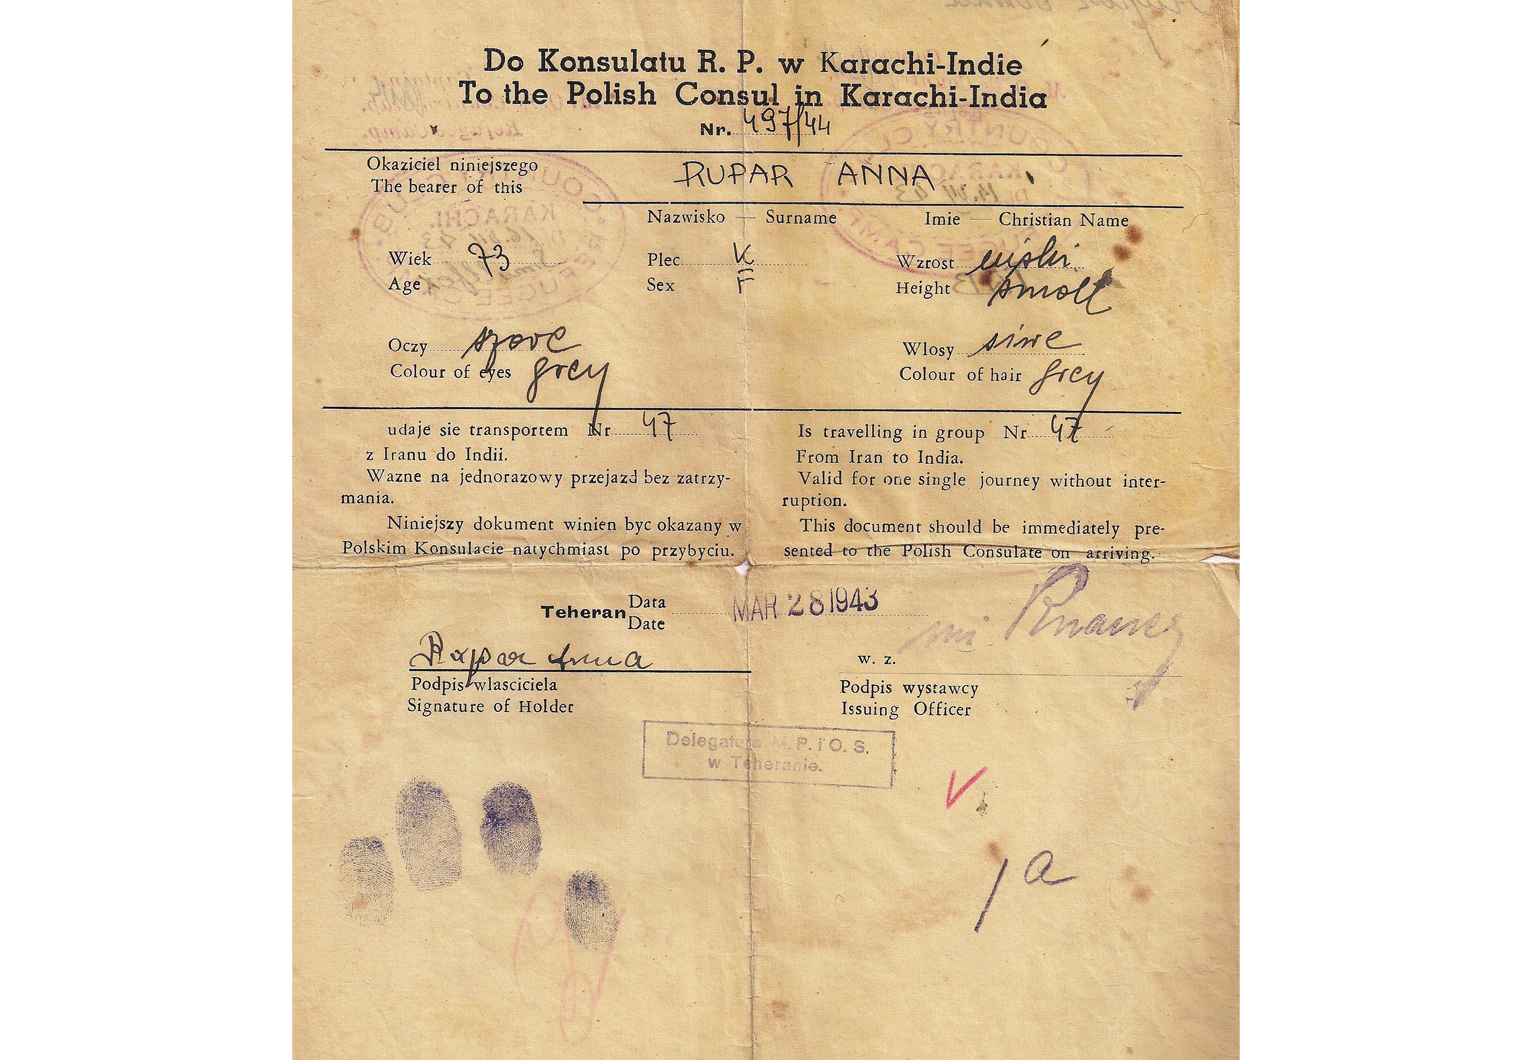 WW2 refugee passport from Tehran